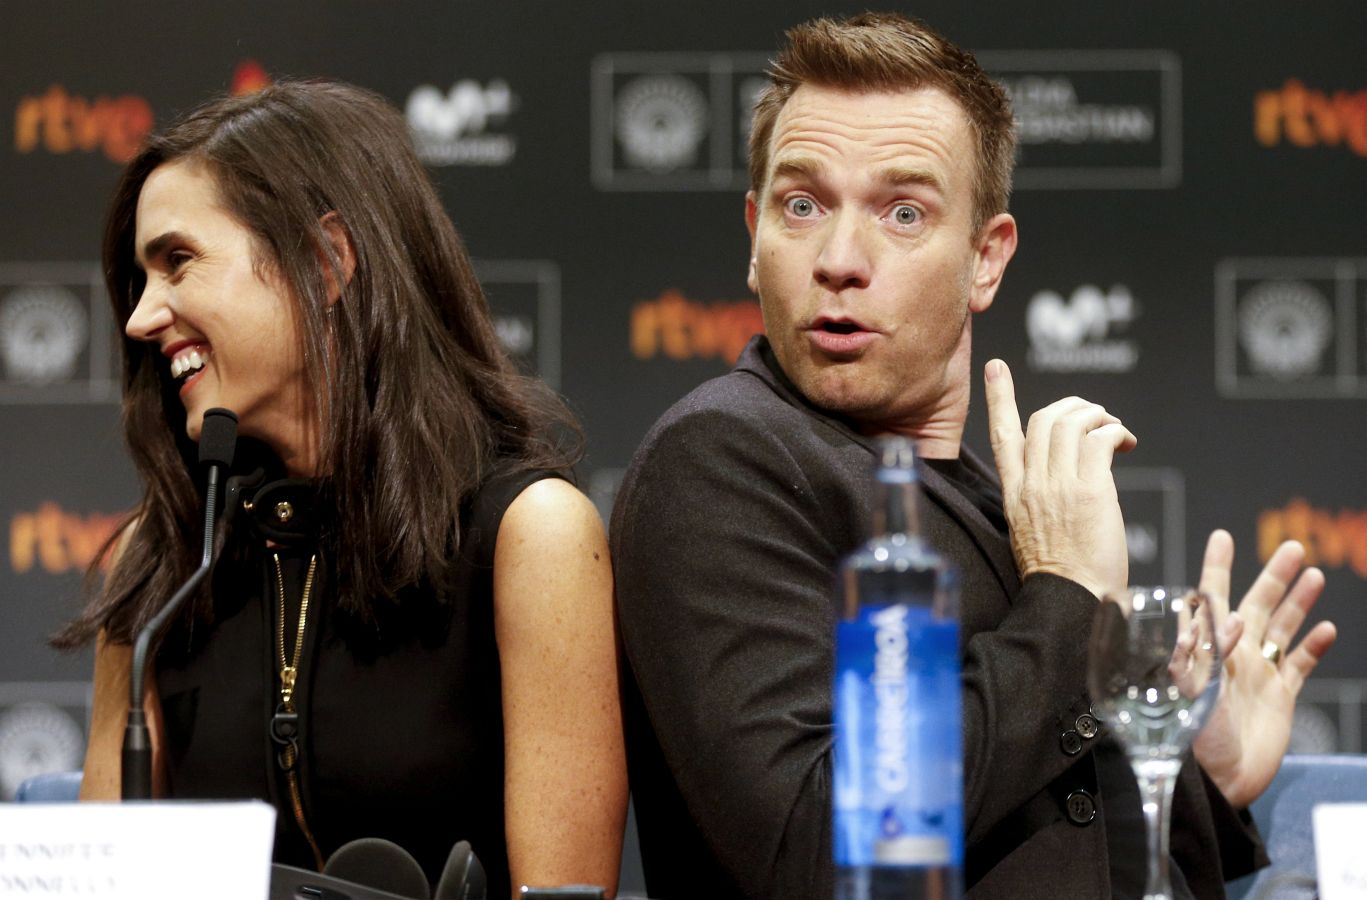 Ewan McGregor y Jennifer Connelly en el Zinemaldia